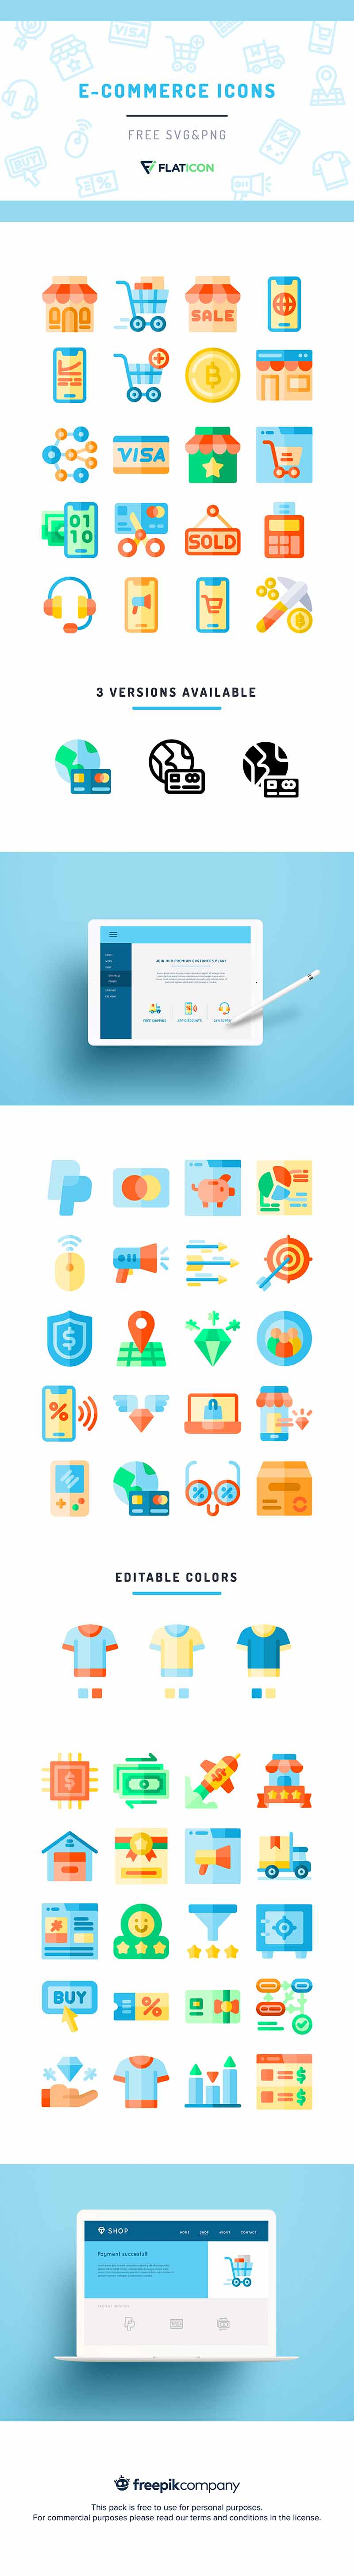 FREE eCommerce Icons Bundle For Instant Download | DealFuel